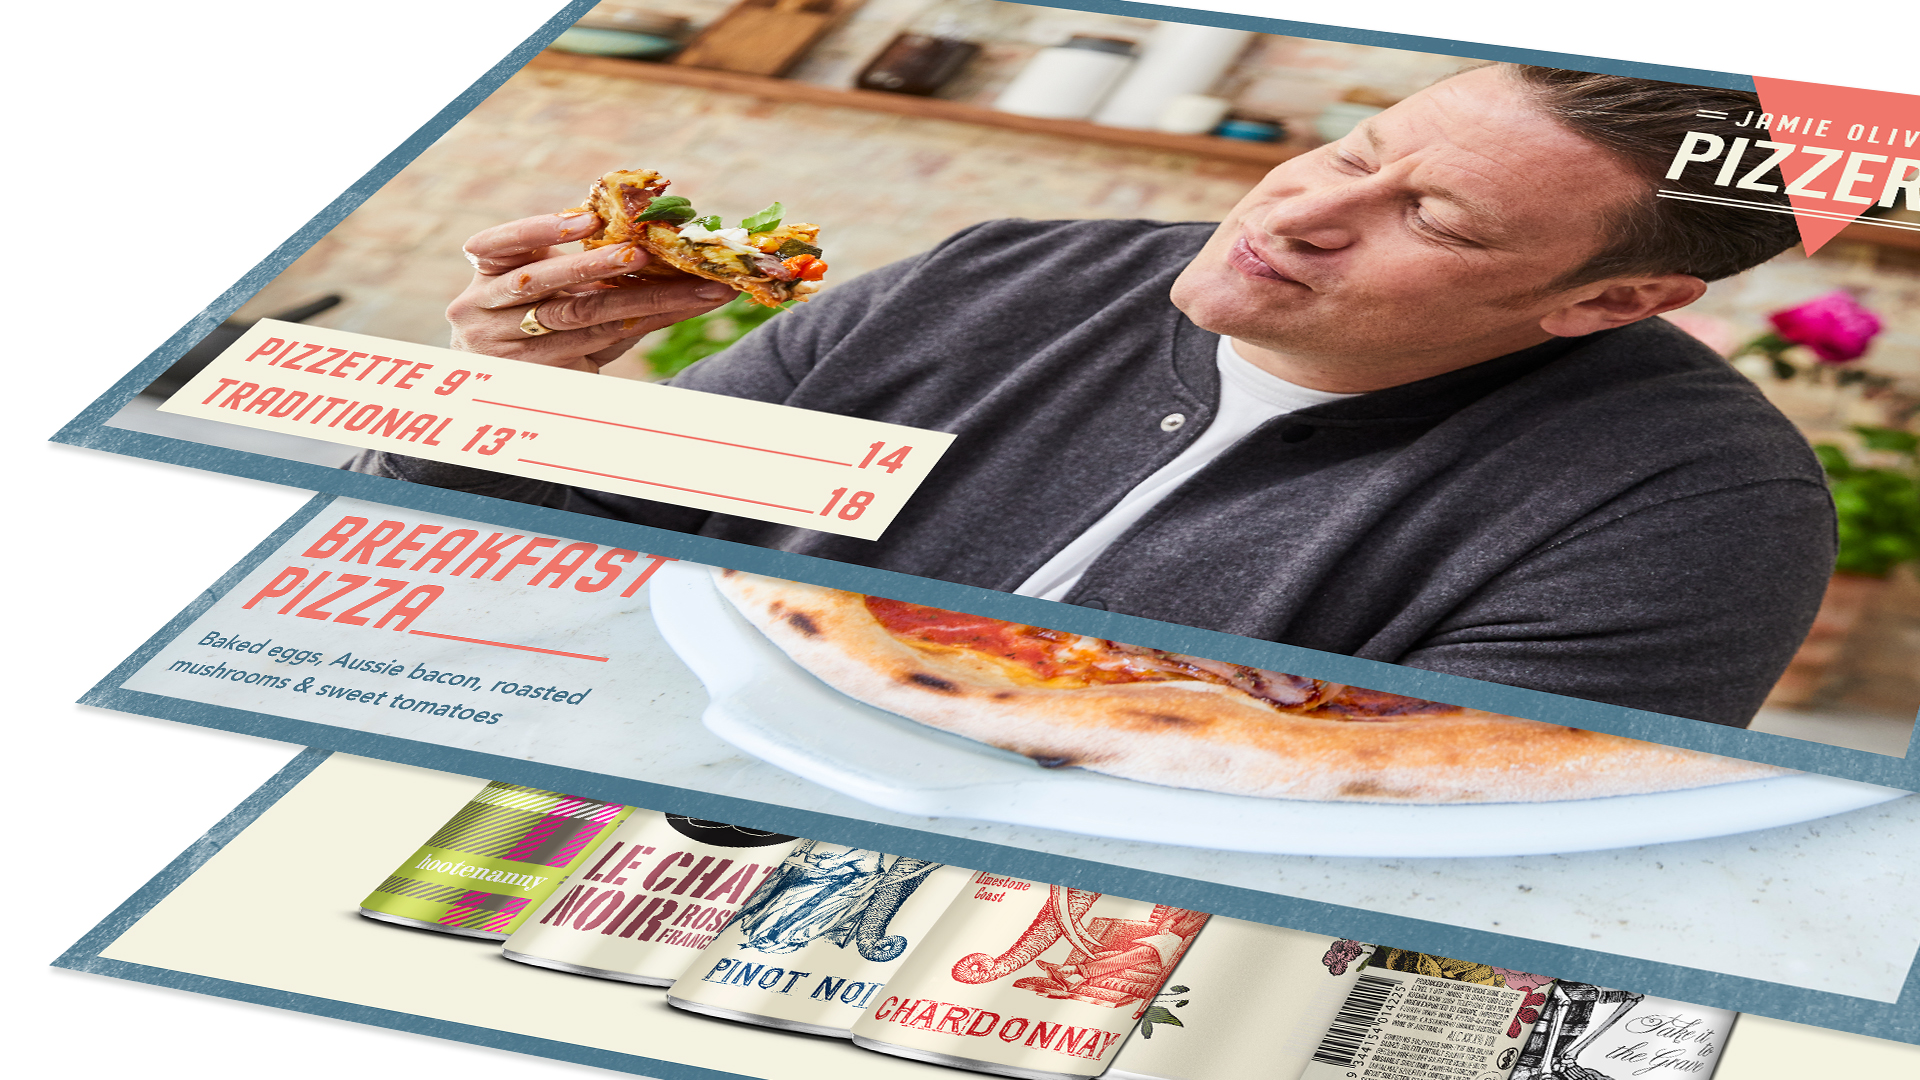 Celbrity Chef Jamie Oliver shown eating pizza on a digital menu board